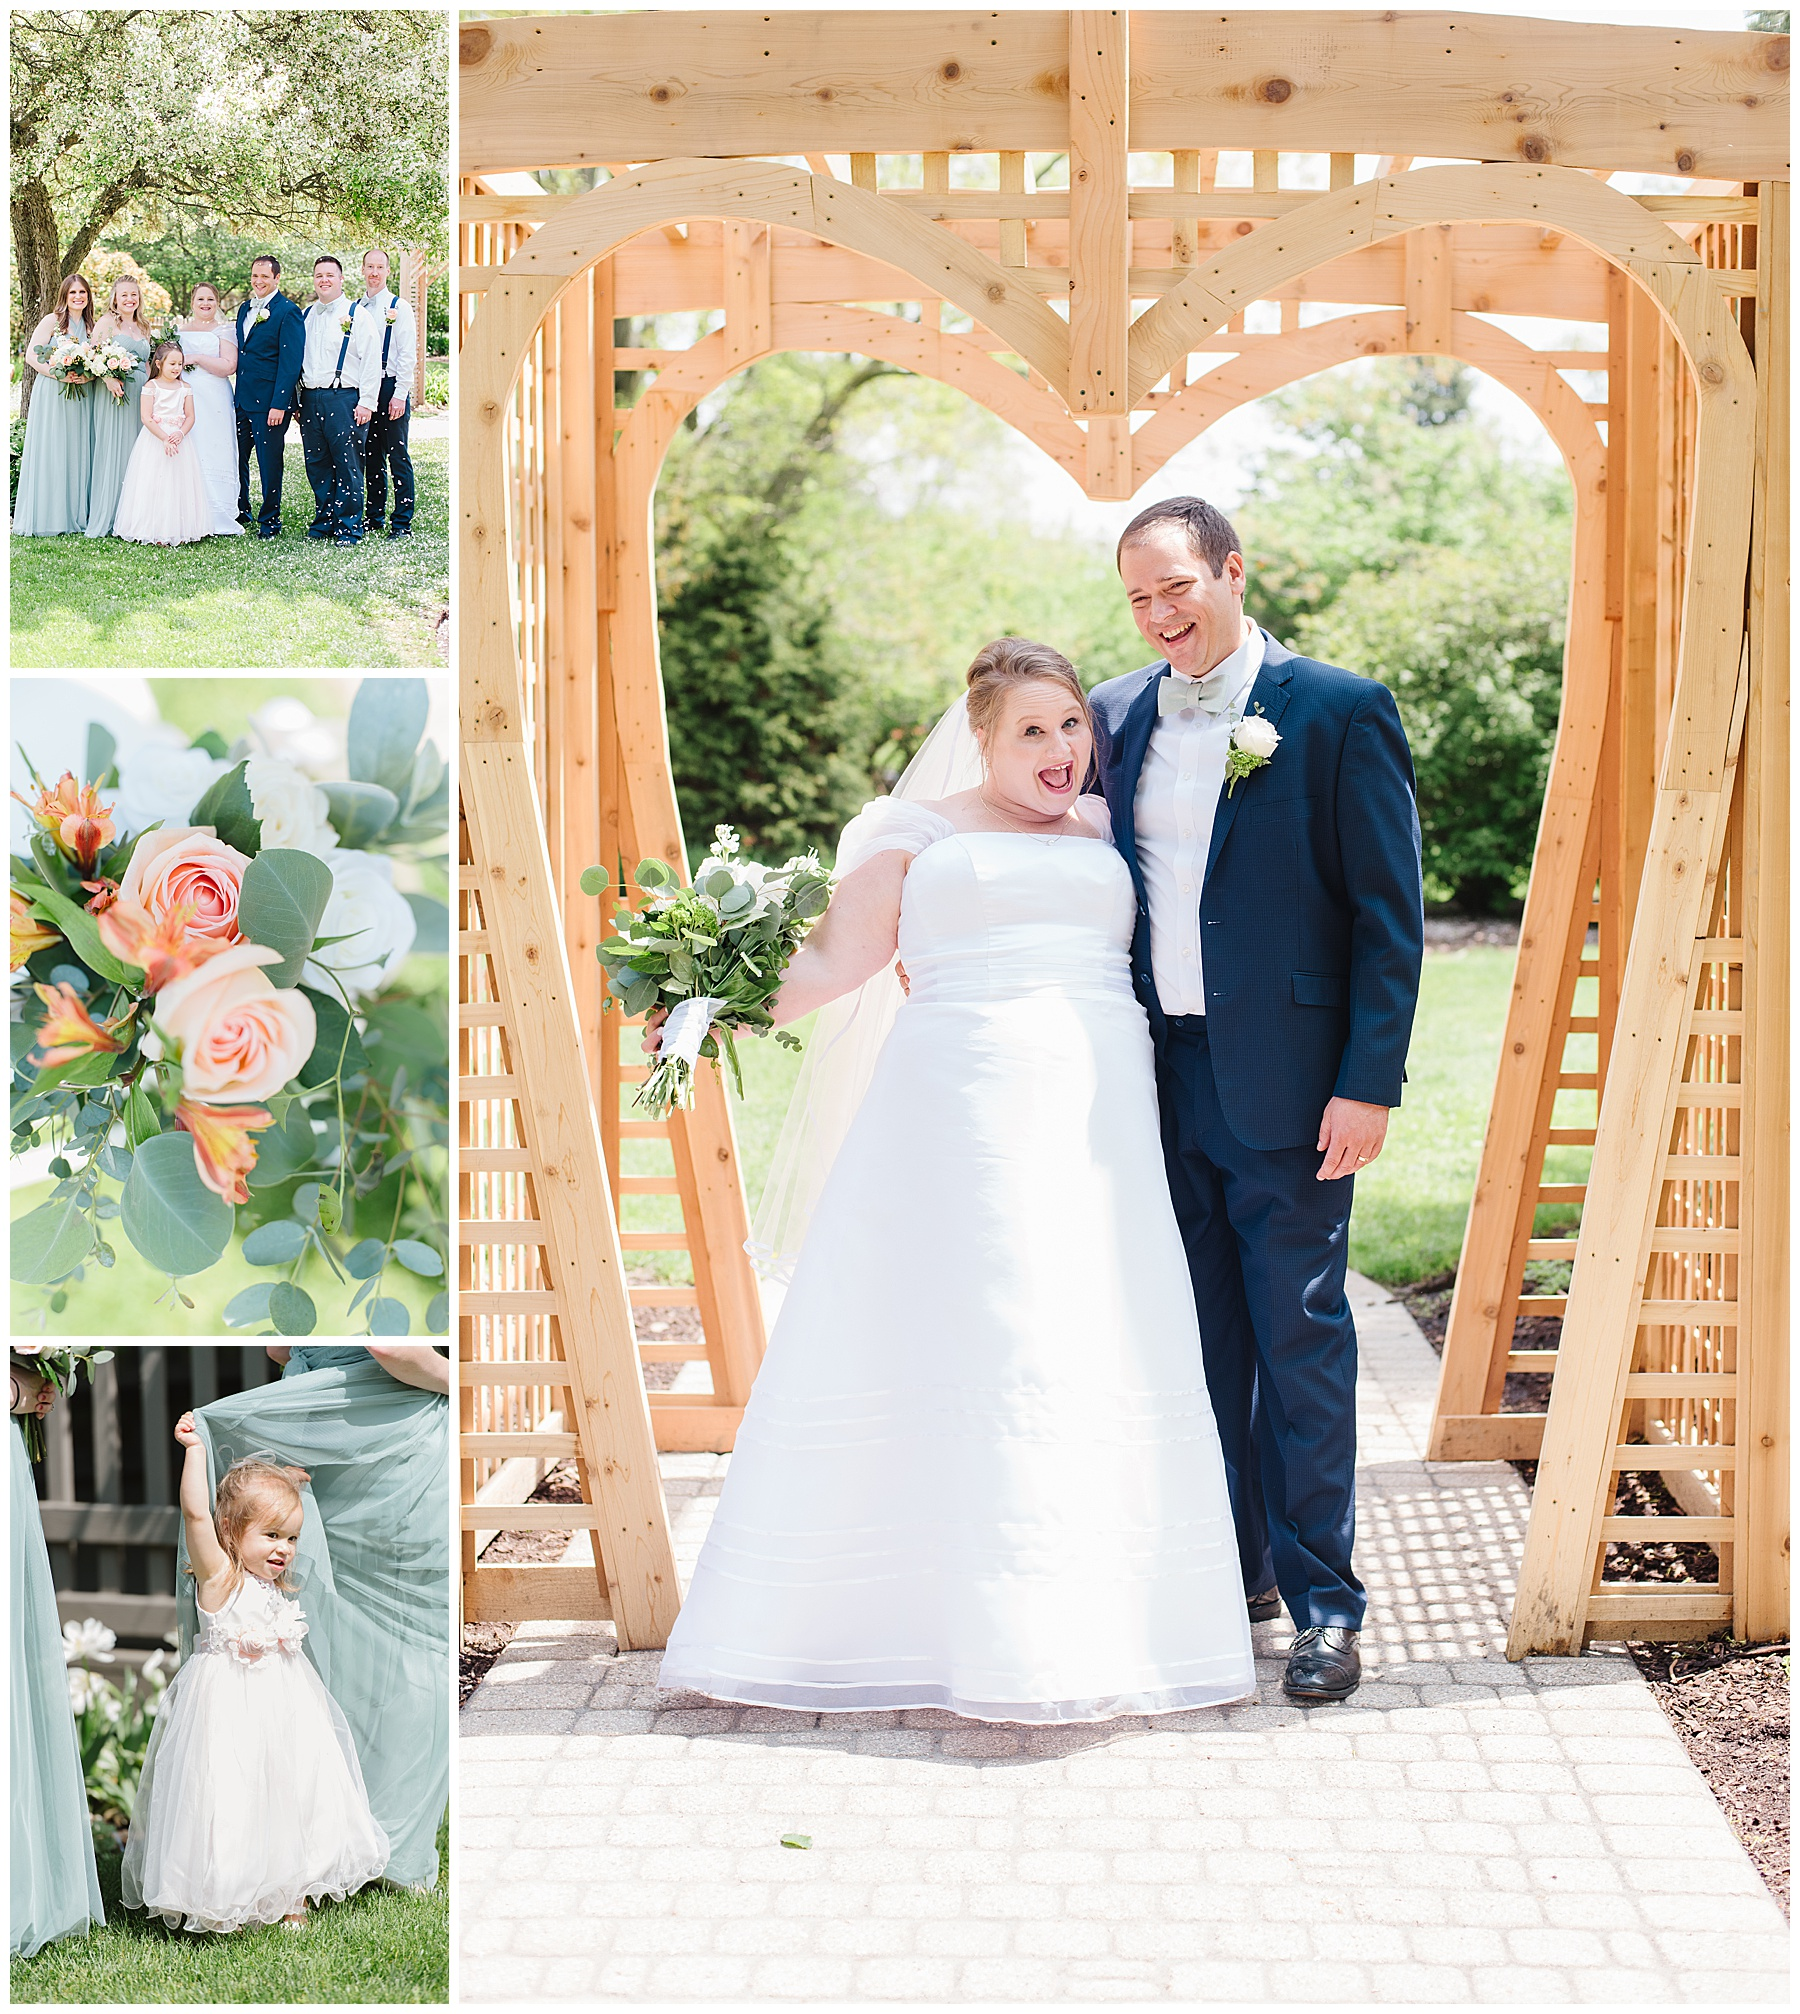 foster park fort wayne indiana wedding photographer_0197